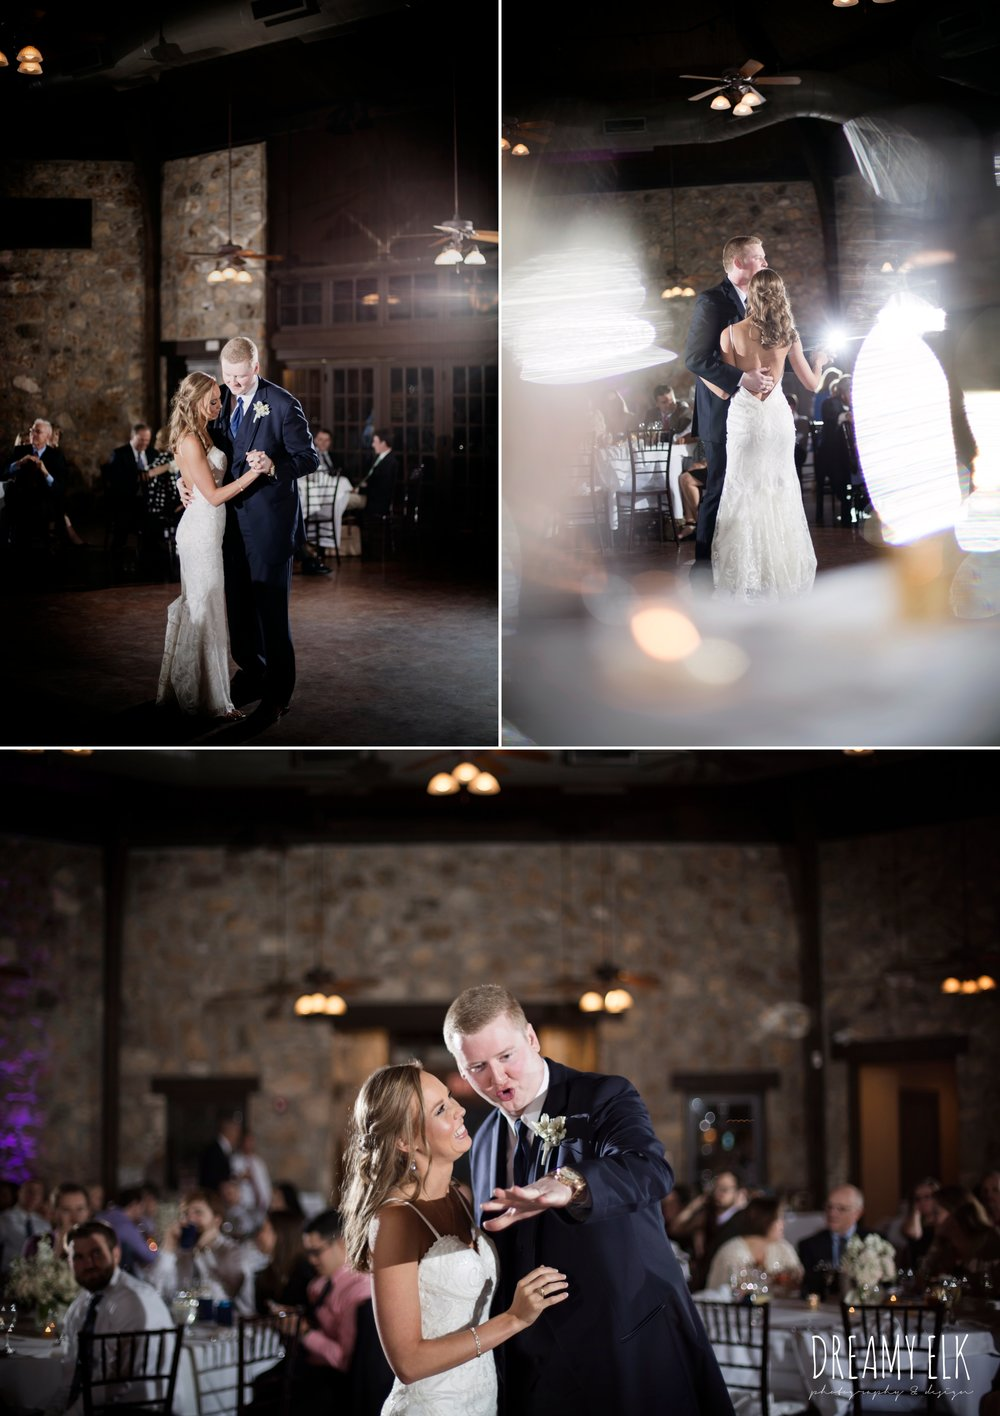 bride and groom first dance, backless column sheath wedding dress, cloudy march wedding photo, canyon springs golf club wedding, san antonio, texas {dreamy elk photography and design}